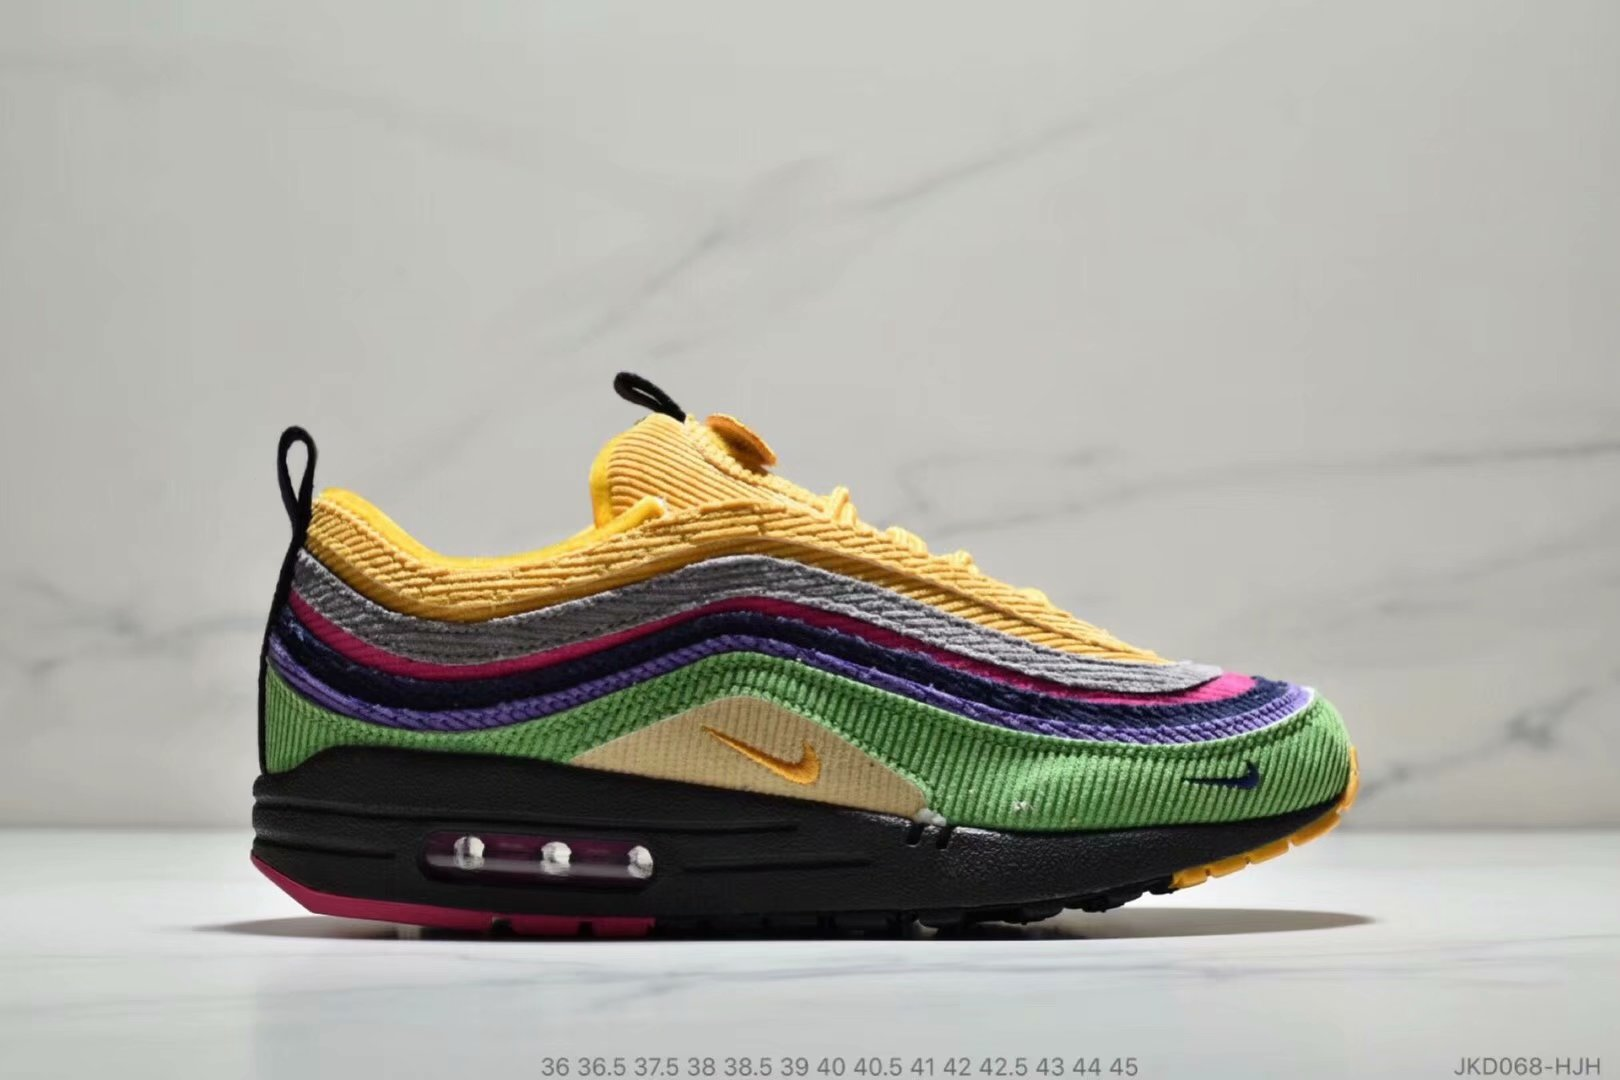 Nike Air Max 87 1 Sean Wotherspoon Grass Green Yellow Grey Purple Black On VaporMaxRunning